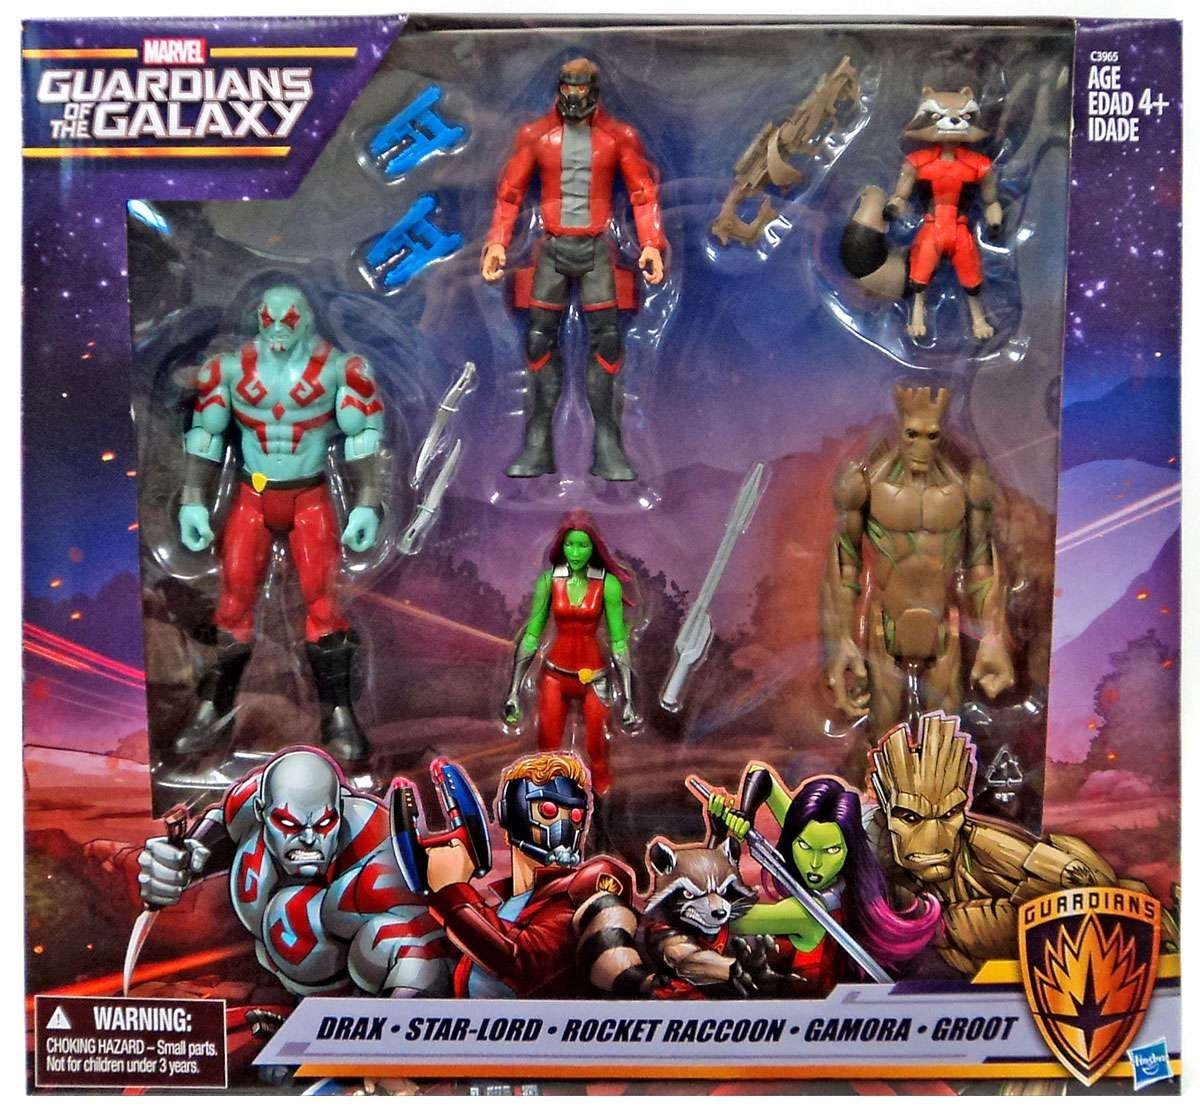 Marvel Guardians of the Galaxy Drax, Star-Lord, Rocket Raccoon, Gamora, Groot by MARVEL